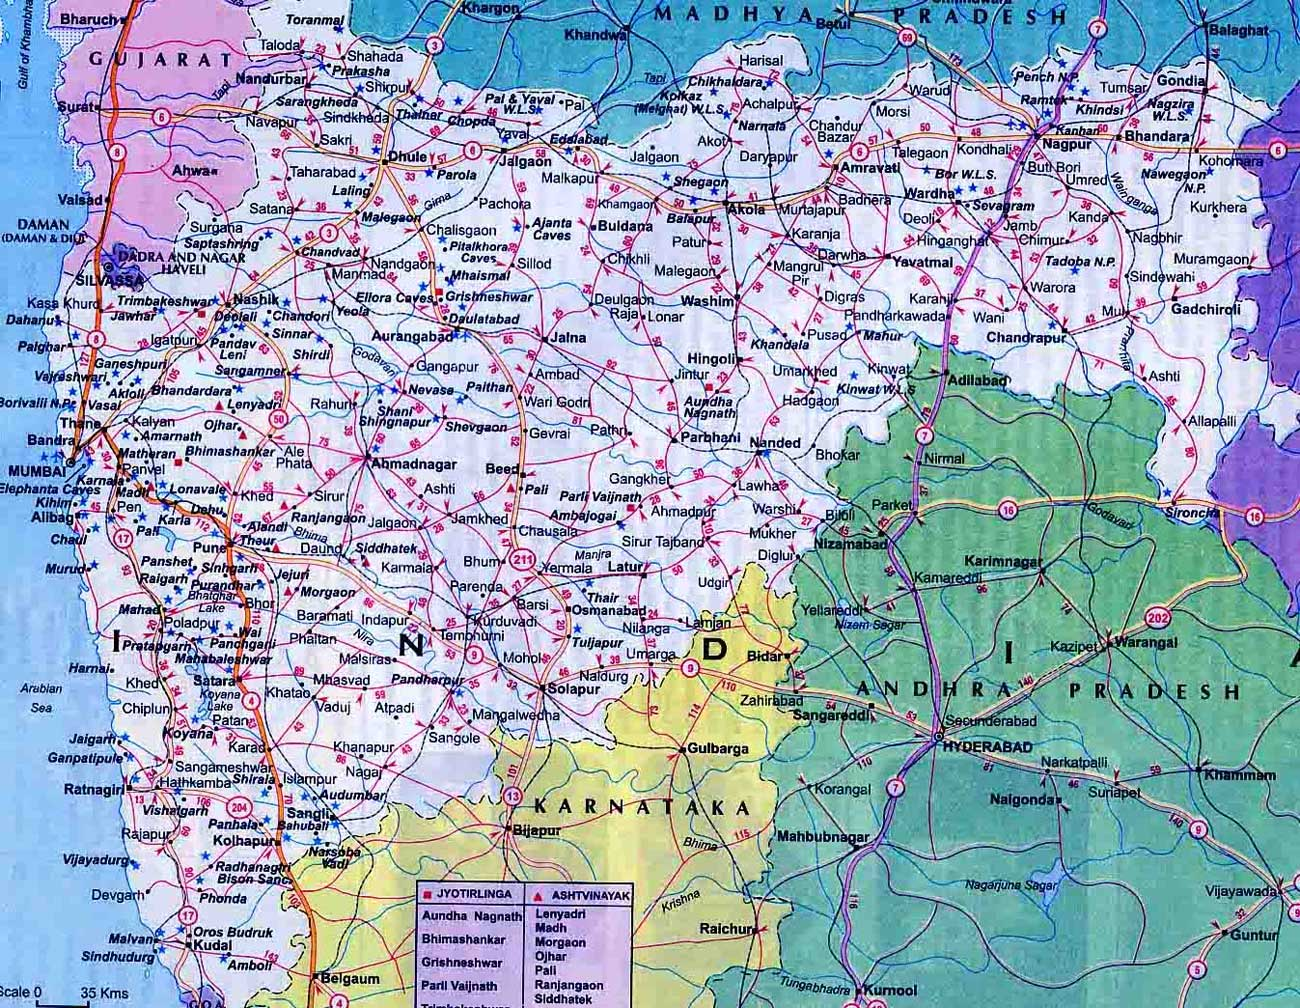 Road Map Of Maharashtra With Distance Maharashtra Political Map • Mapsof.net